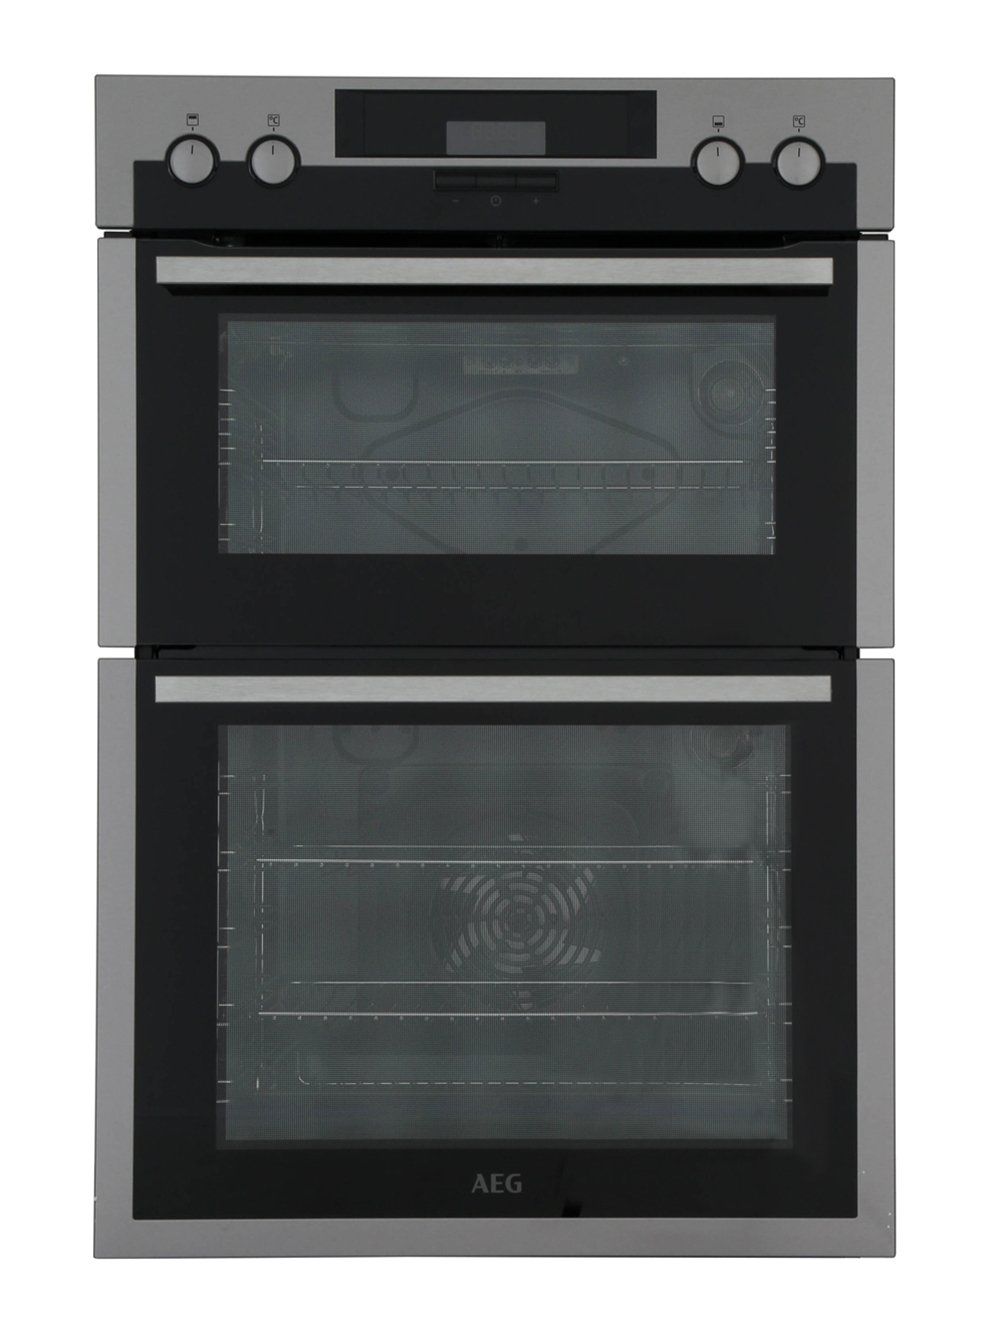 AEG DES431010M SurroundCook Double Built In Electric Oven